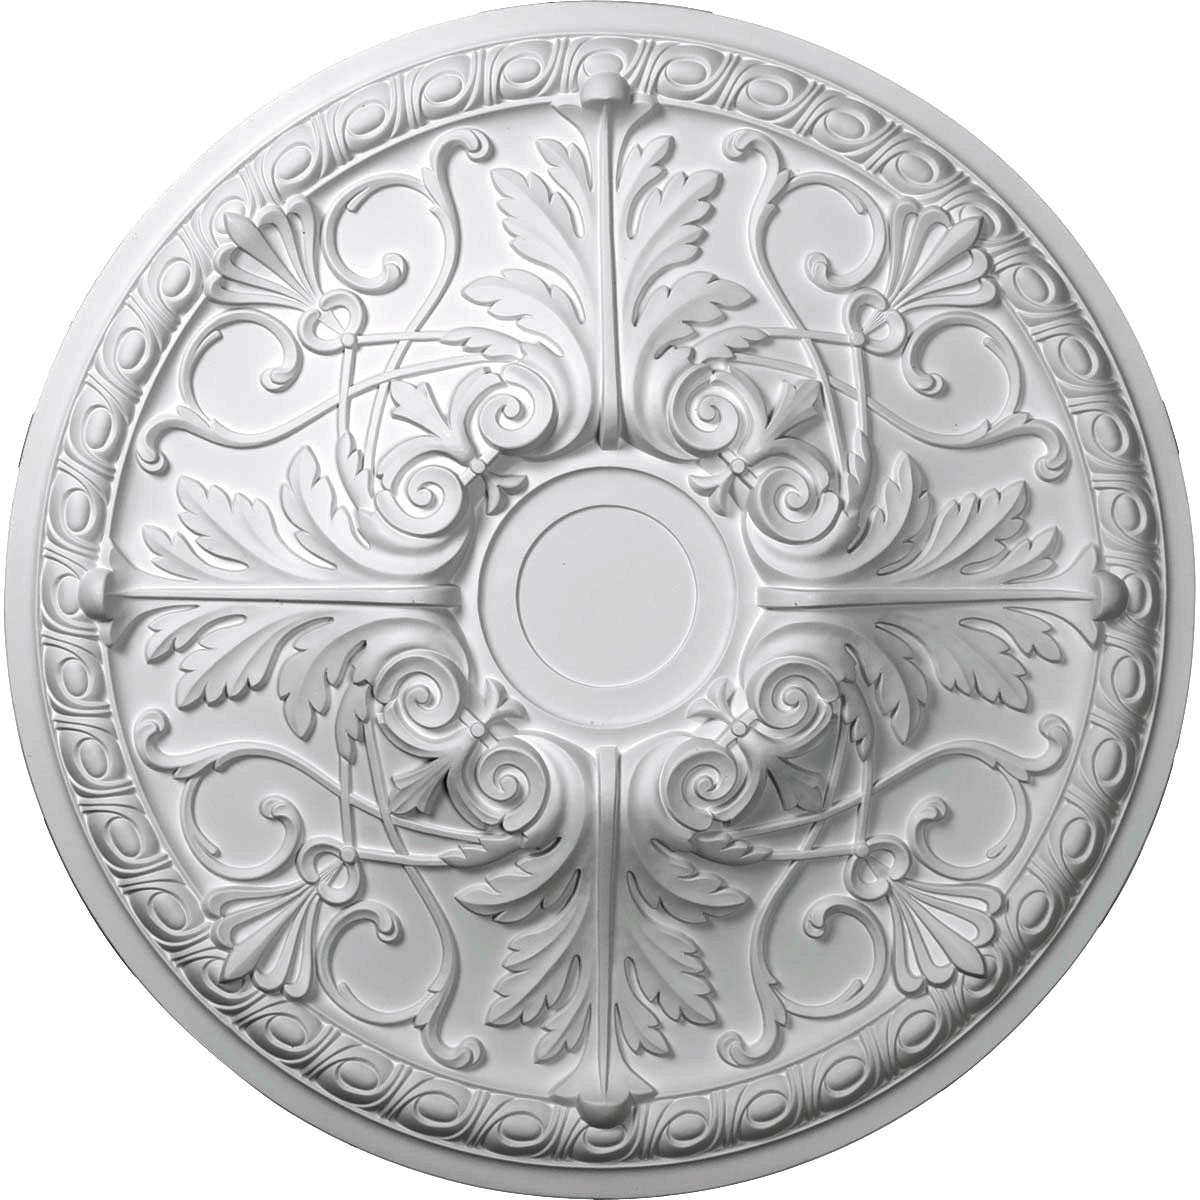 """EM-CM26TN - 26""""OD x 3""""P Tristan Ceiling Medallion (Fits Canopies up to 5 1/2"""")"""